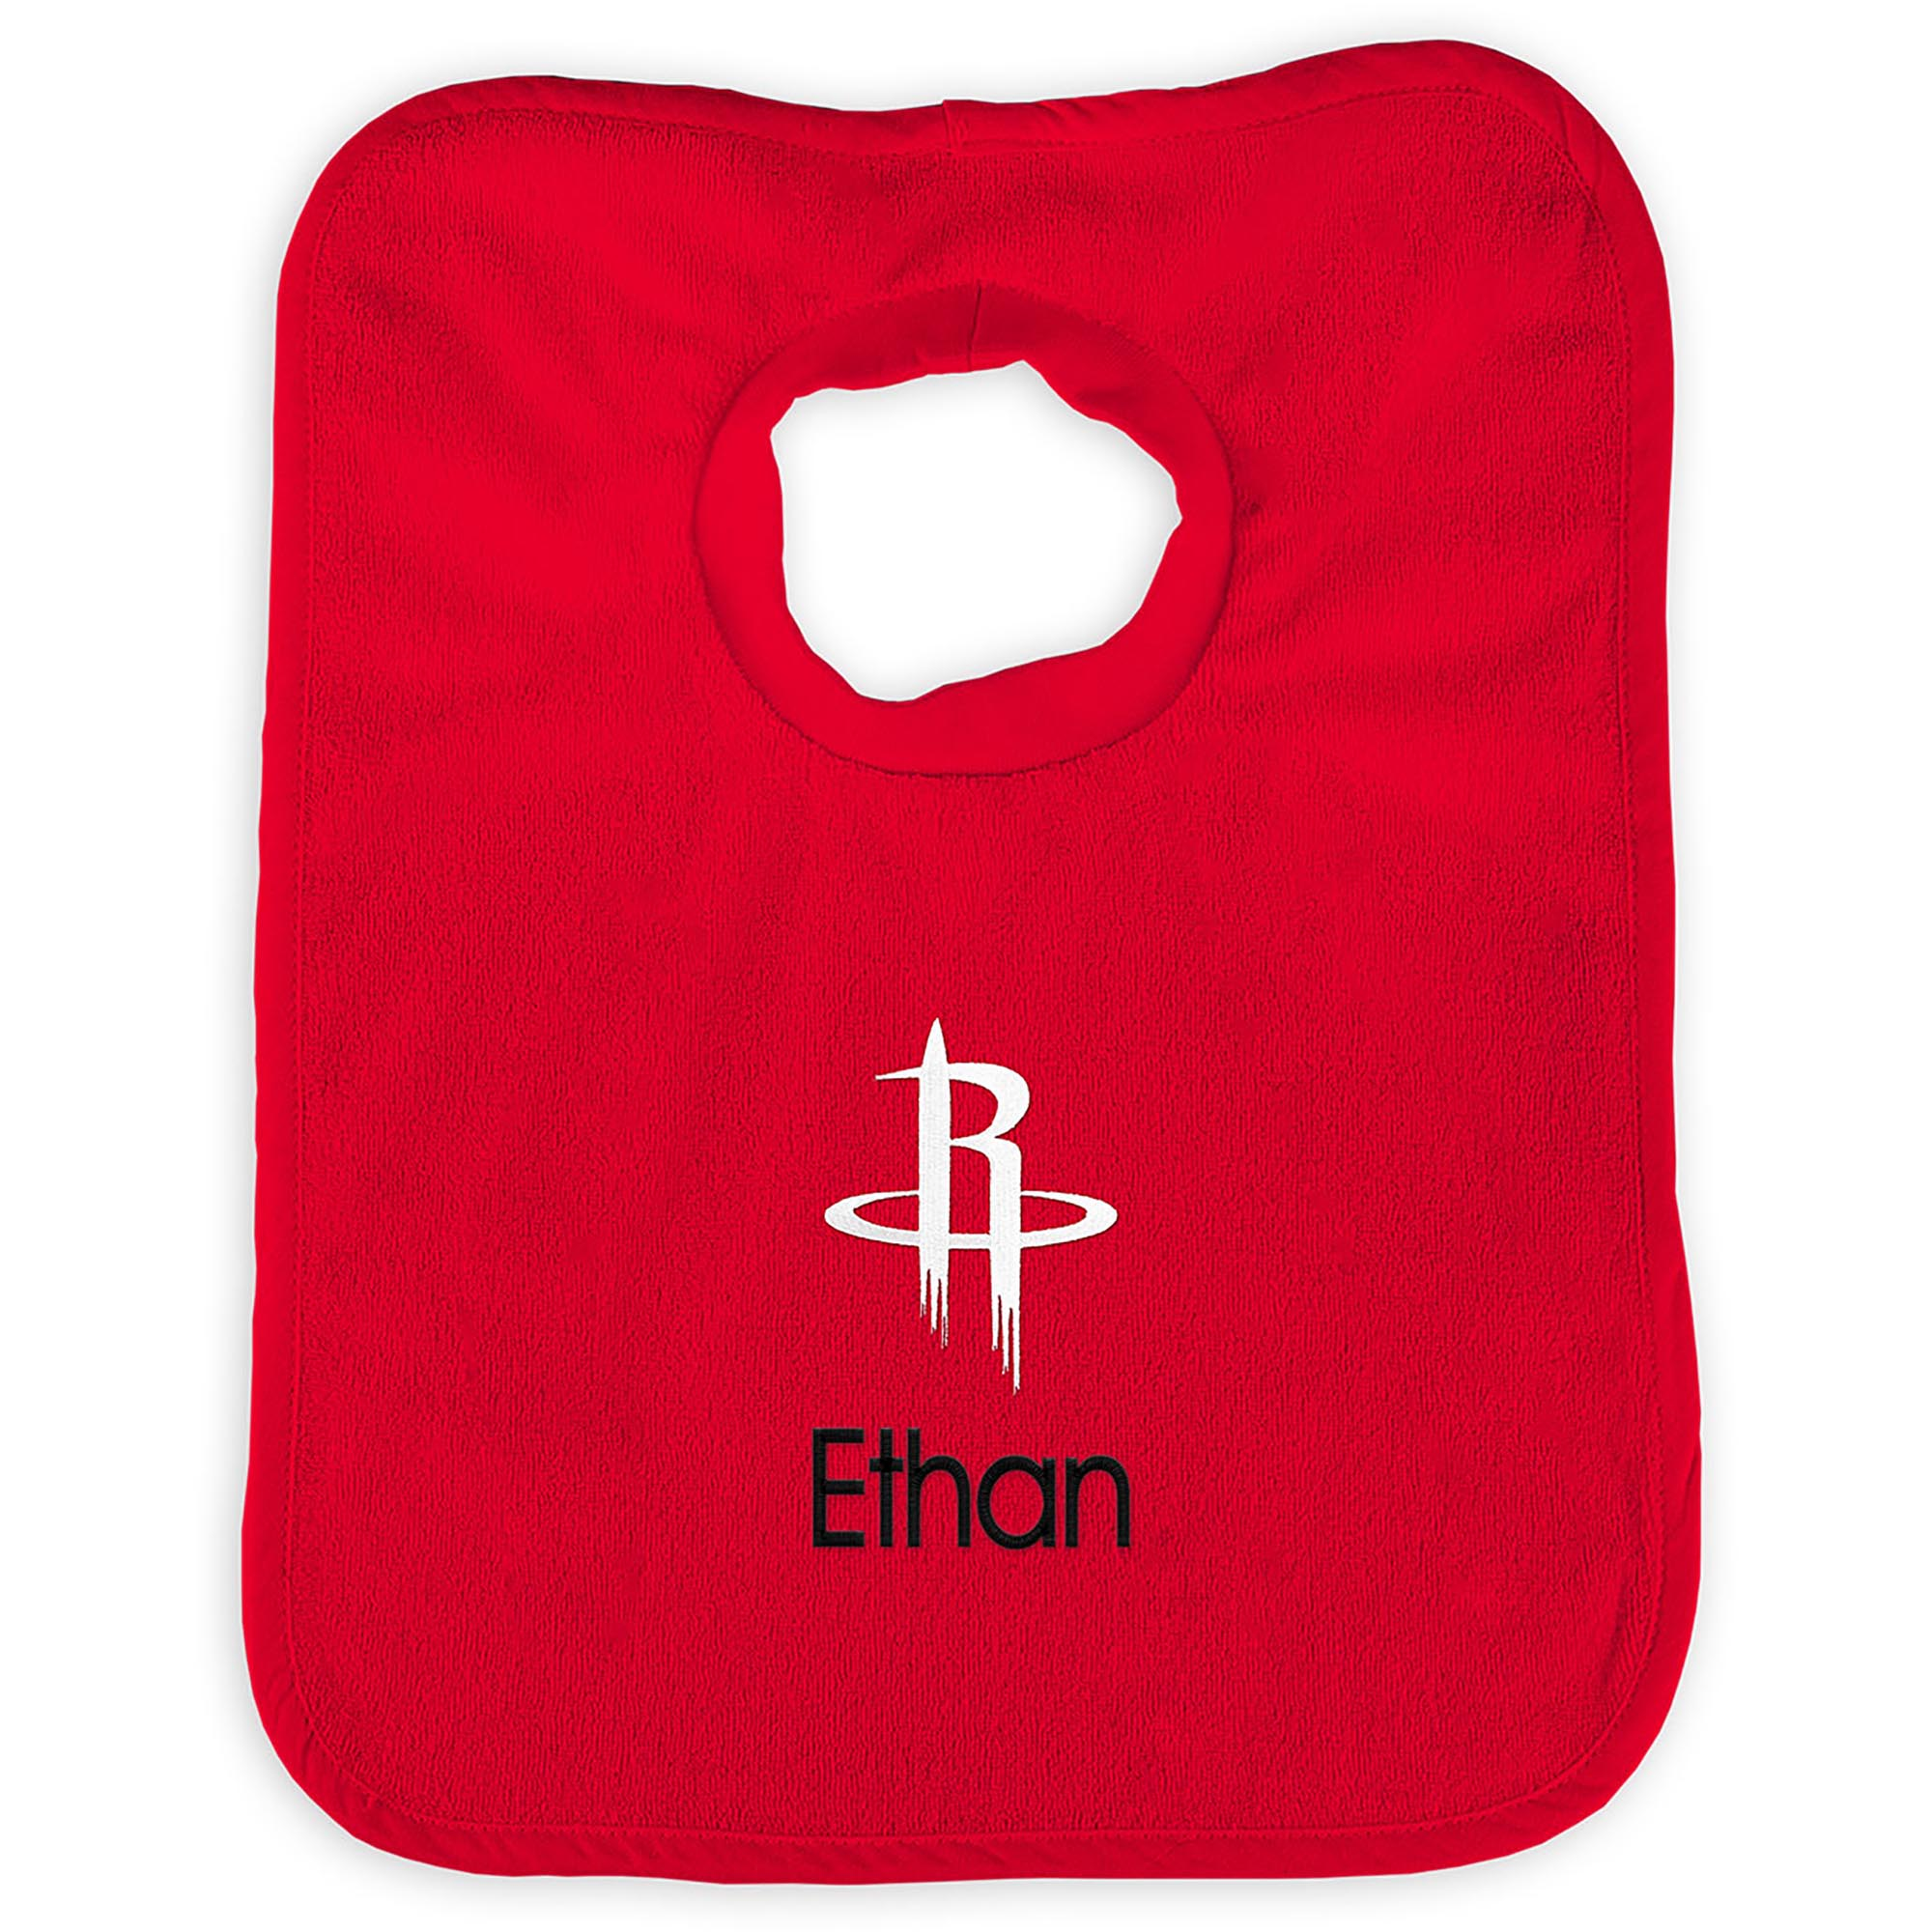 Houston Rockets Infant Personalized Bib - Red